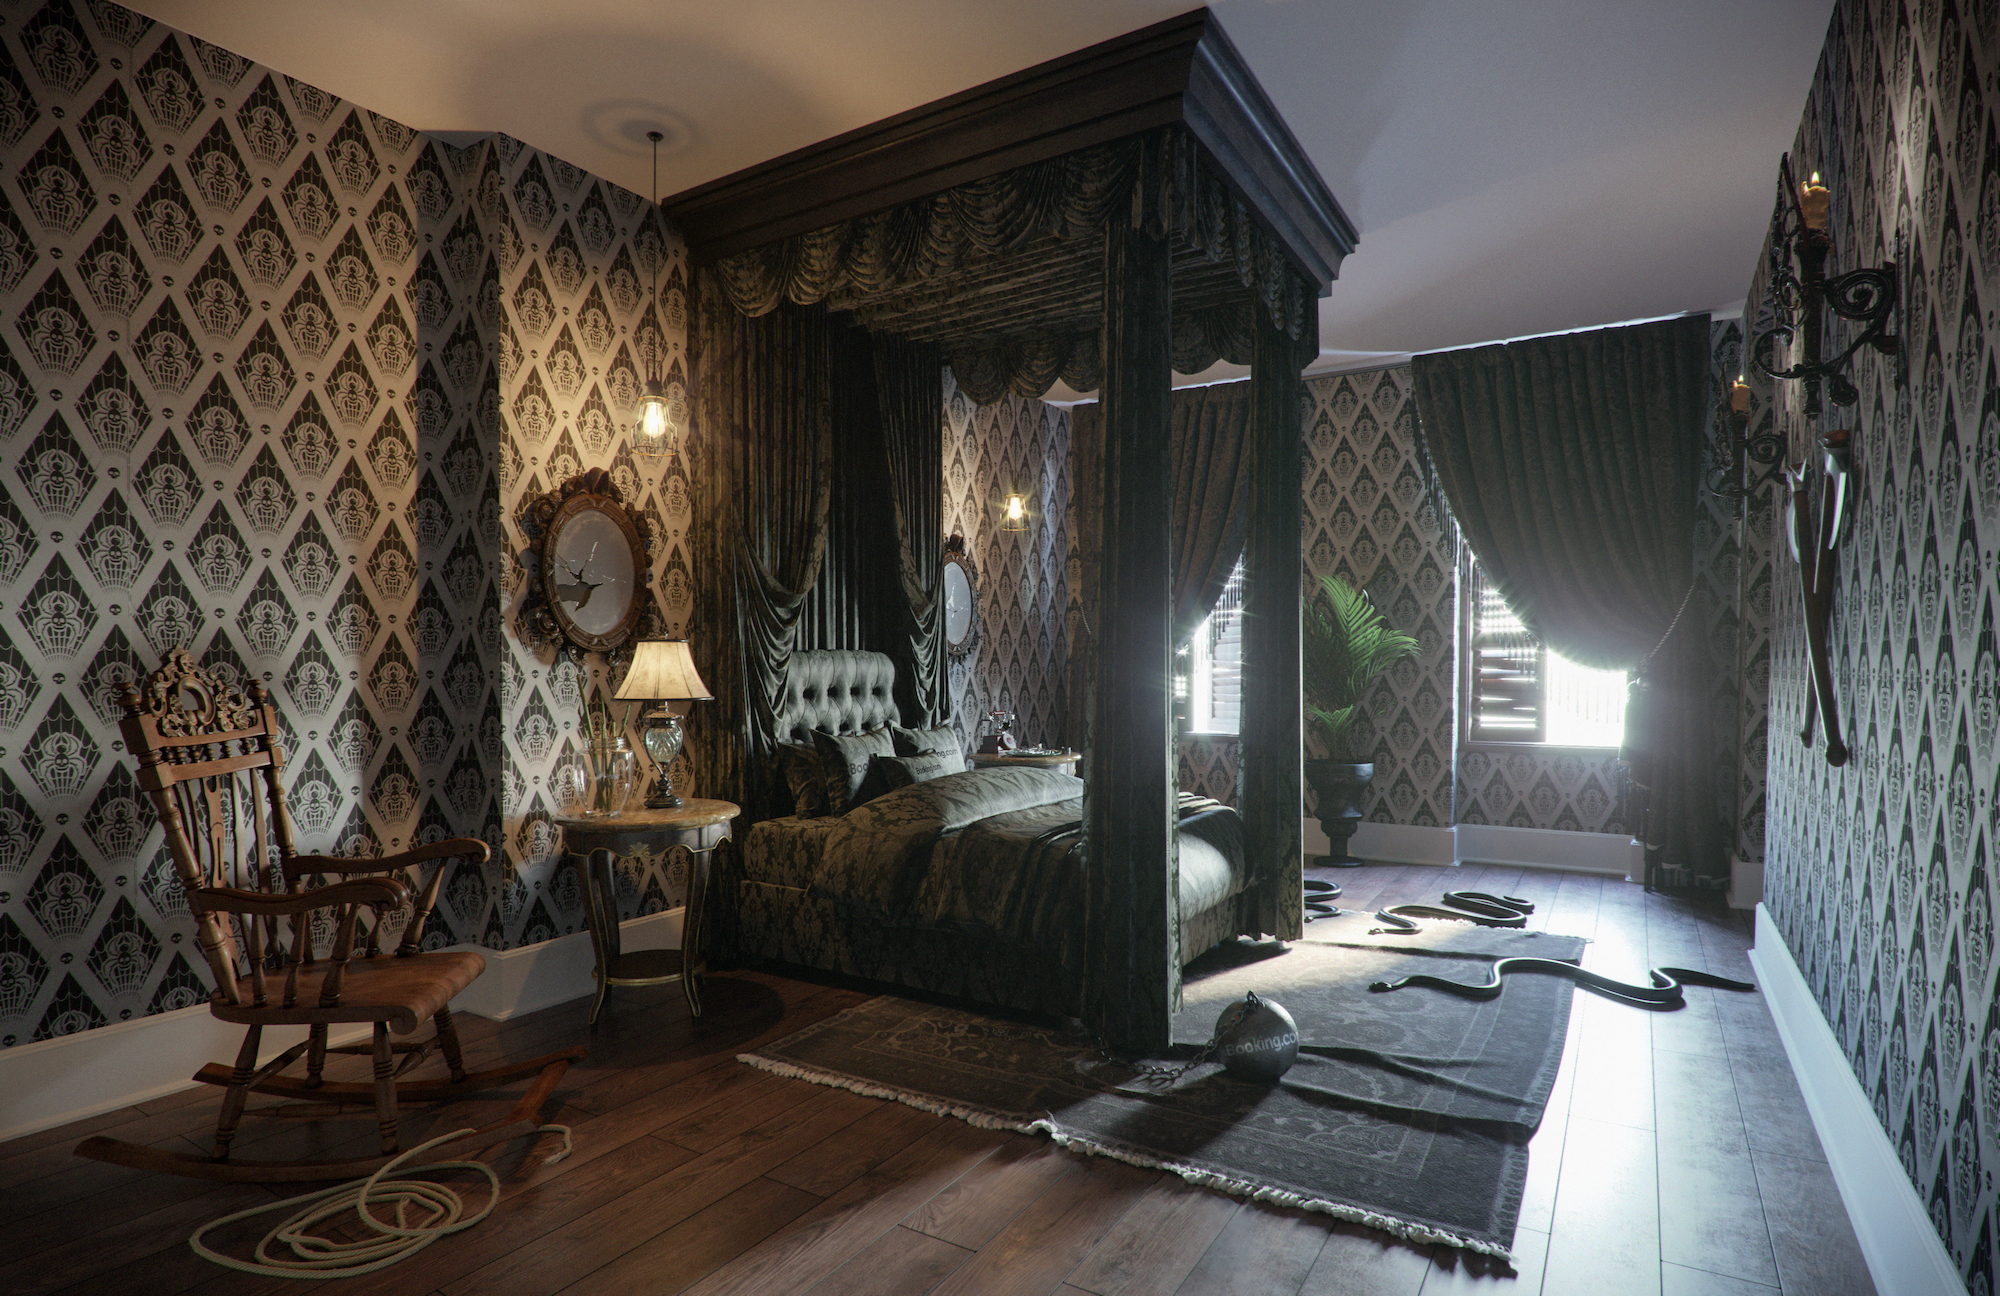 Stay at the creepy and kooky 'Addams Family Mansion' in ...